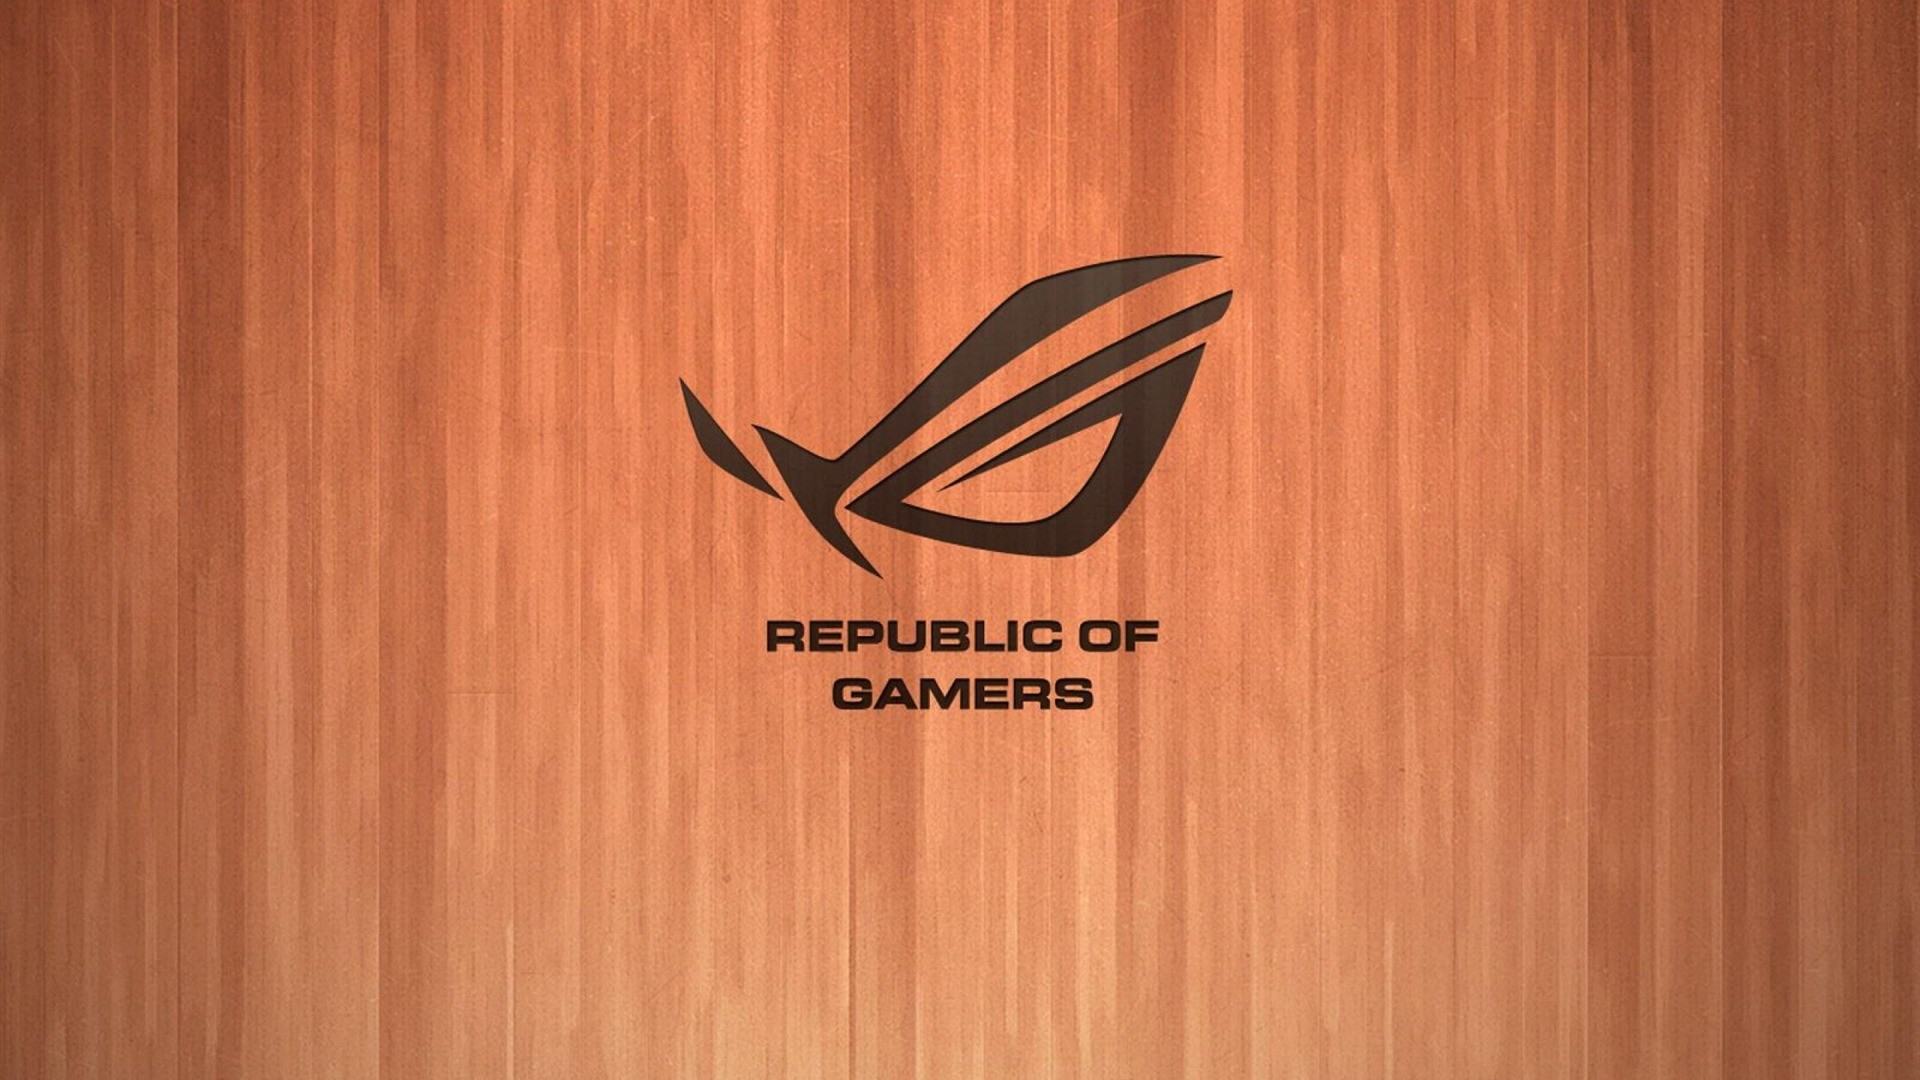 1920x1080 ROG Wallpaper Collection 2013